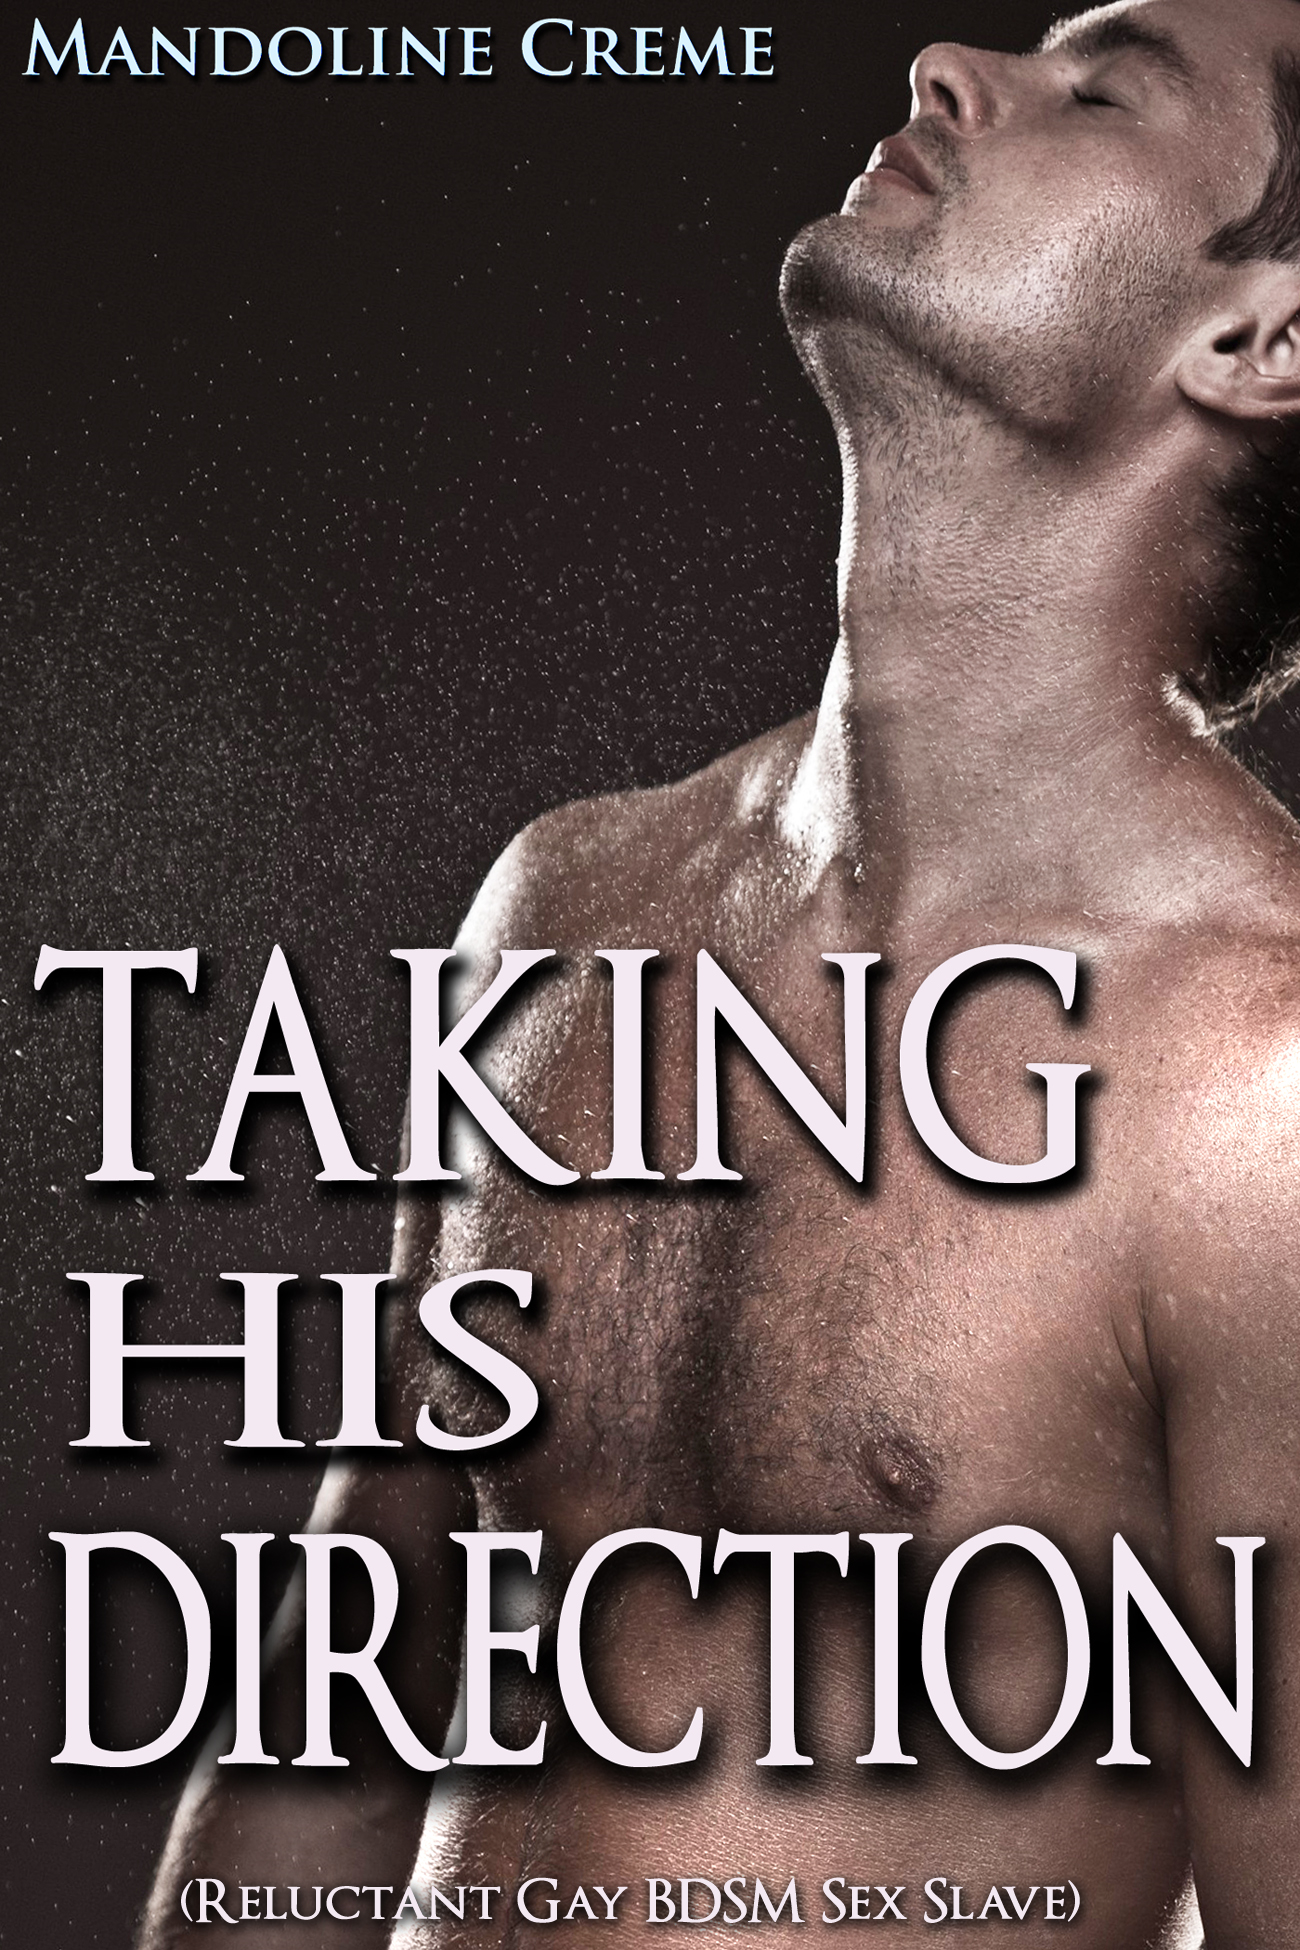 Taking His Direction (Reluctant Gay BDSM Sex Slave) By: Mandoline Creme